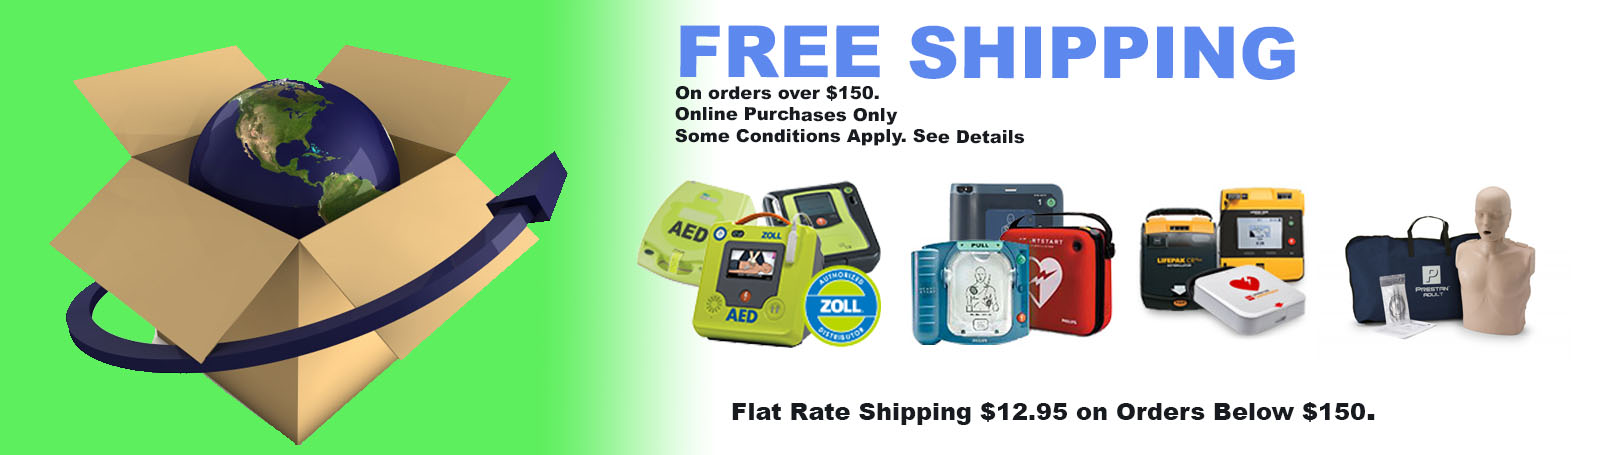 Free Shipping on orders over $150 (some exceptions apply)